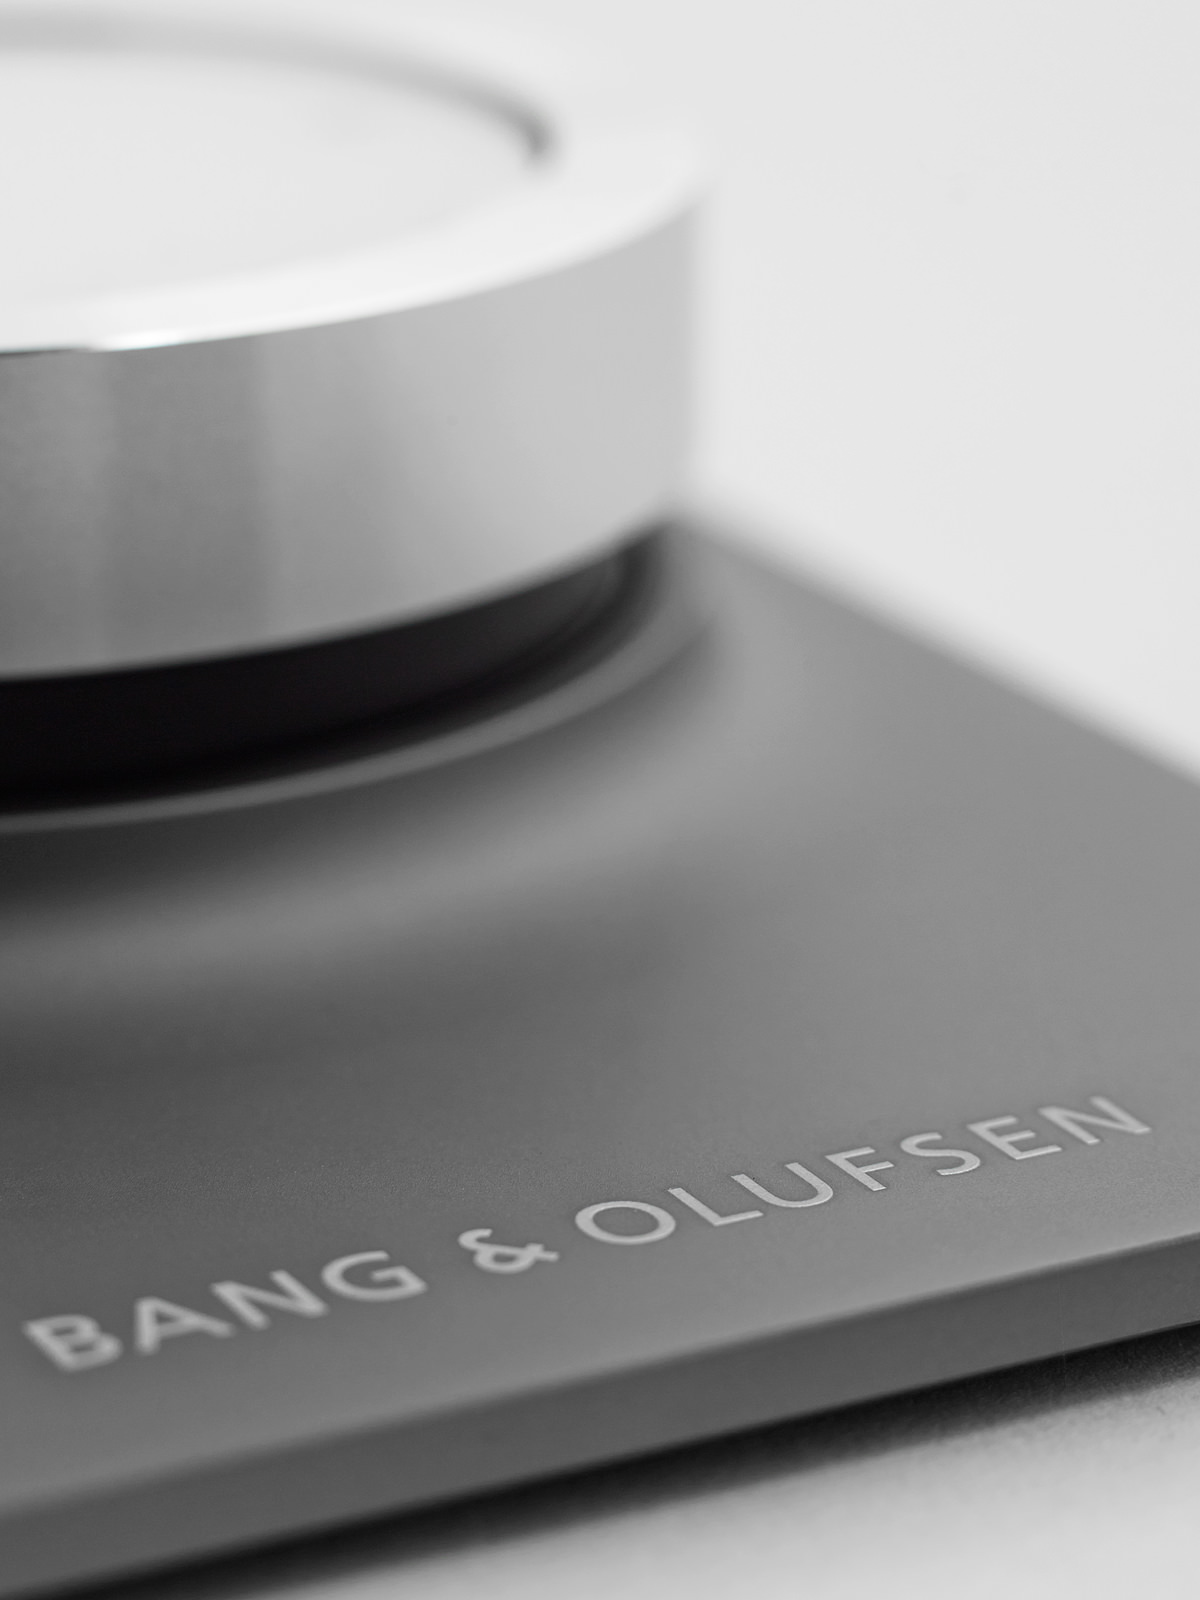 BeoSound Essence product design, Simplification & domestication of innovative design